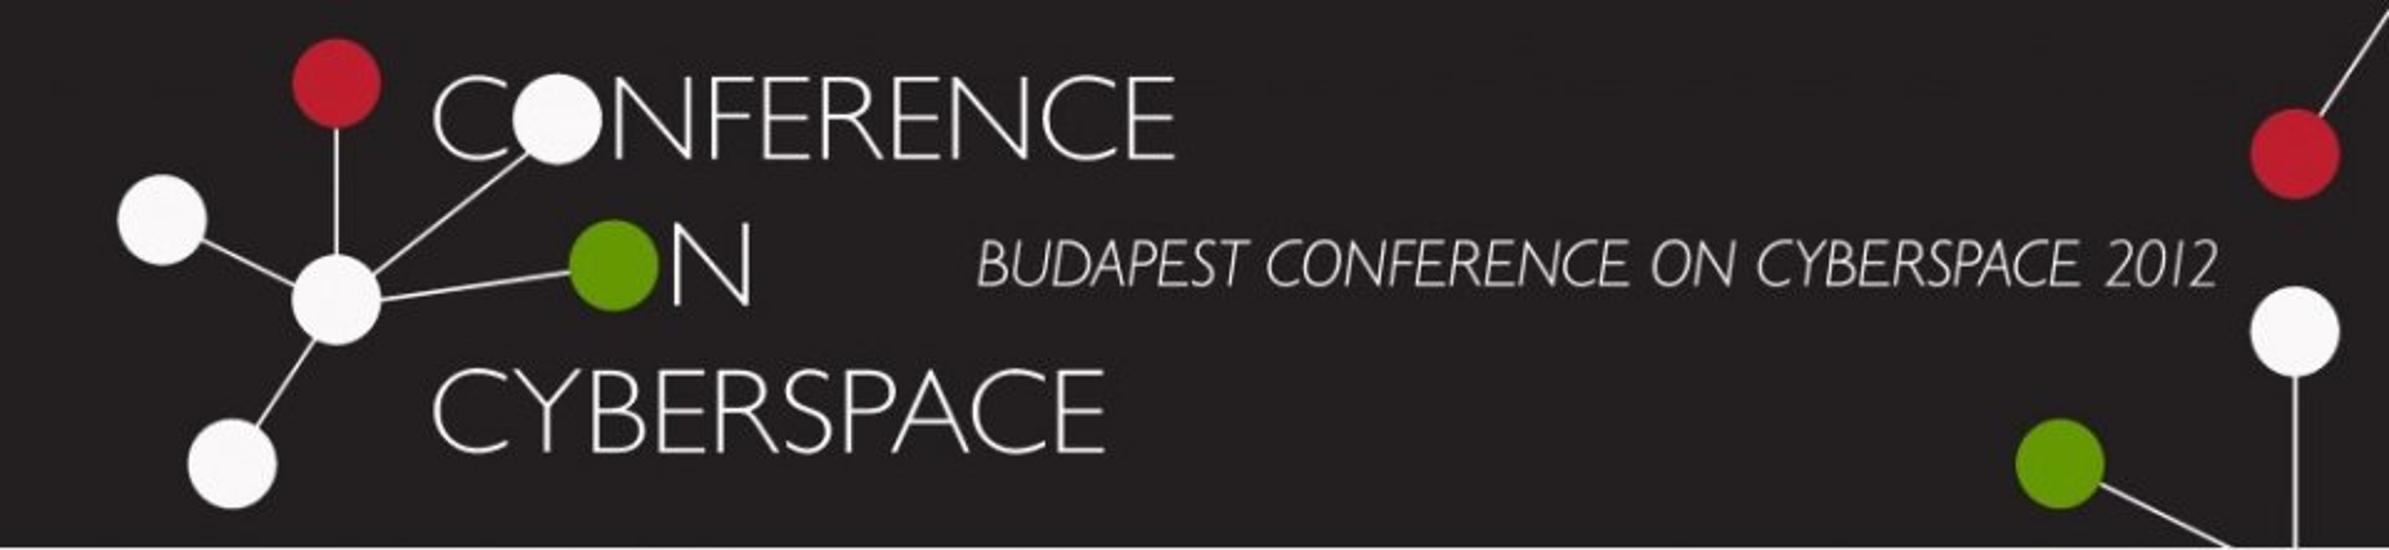 International Cyber Space Conference In Budapest With High-Ranking Politicians